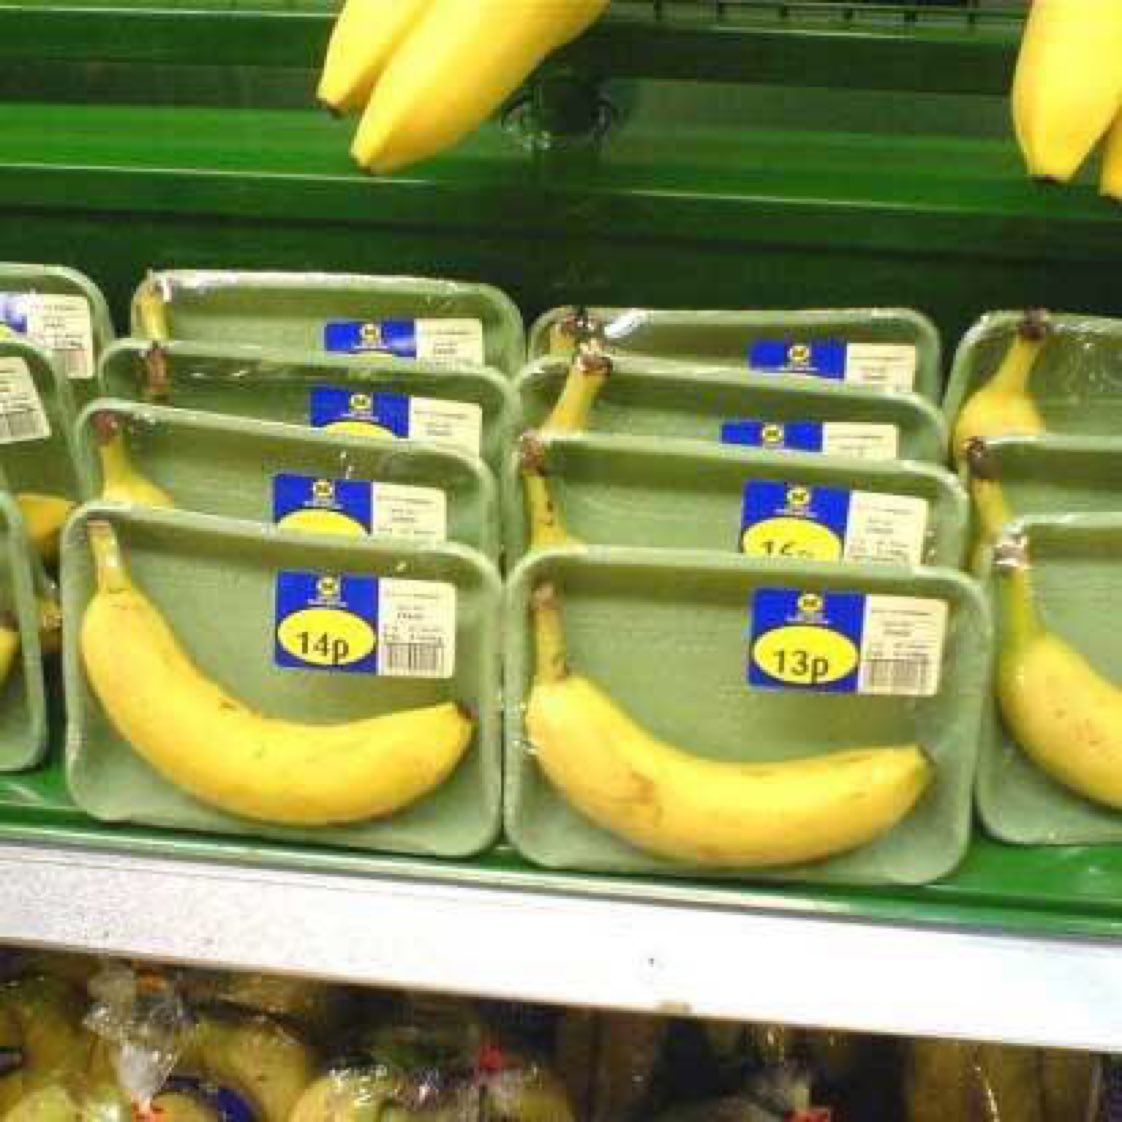 If only bananas came with some kind of natural protective covering! 😆